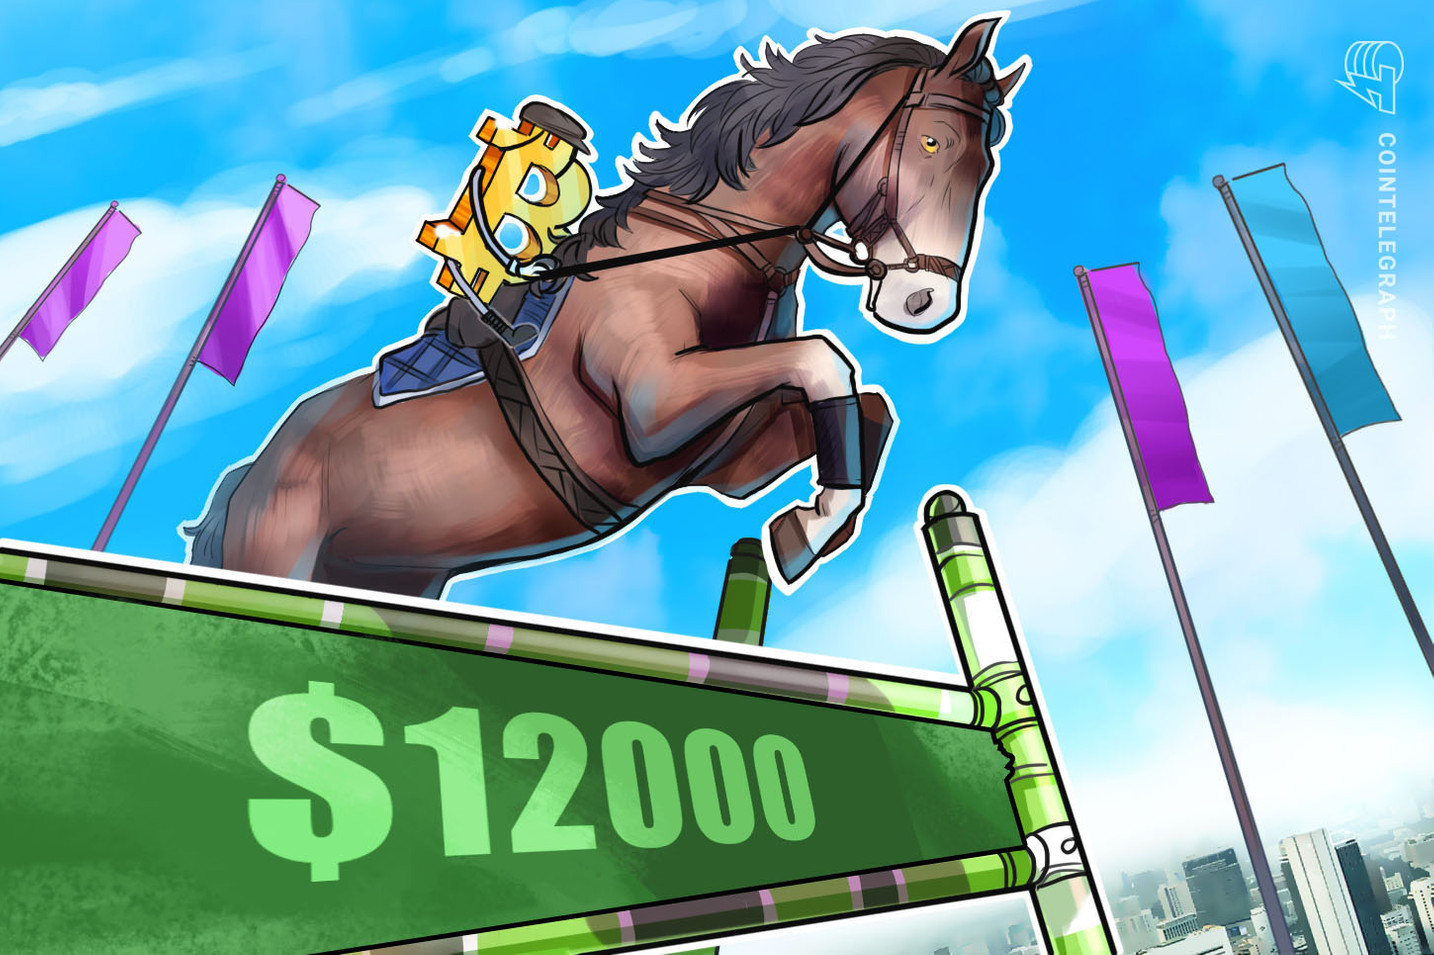 Bitcoin Price Reclaims $12k as Dominance Highest Since April 2017